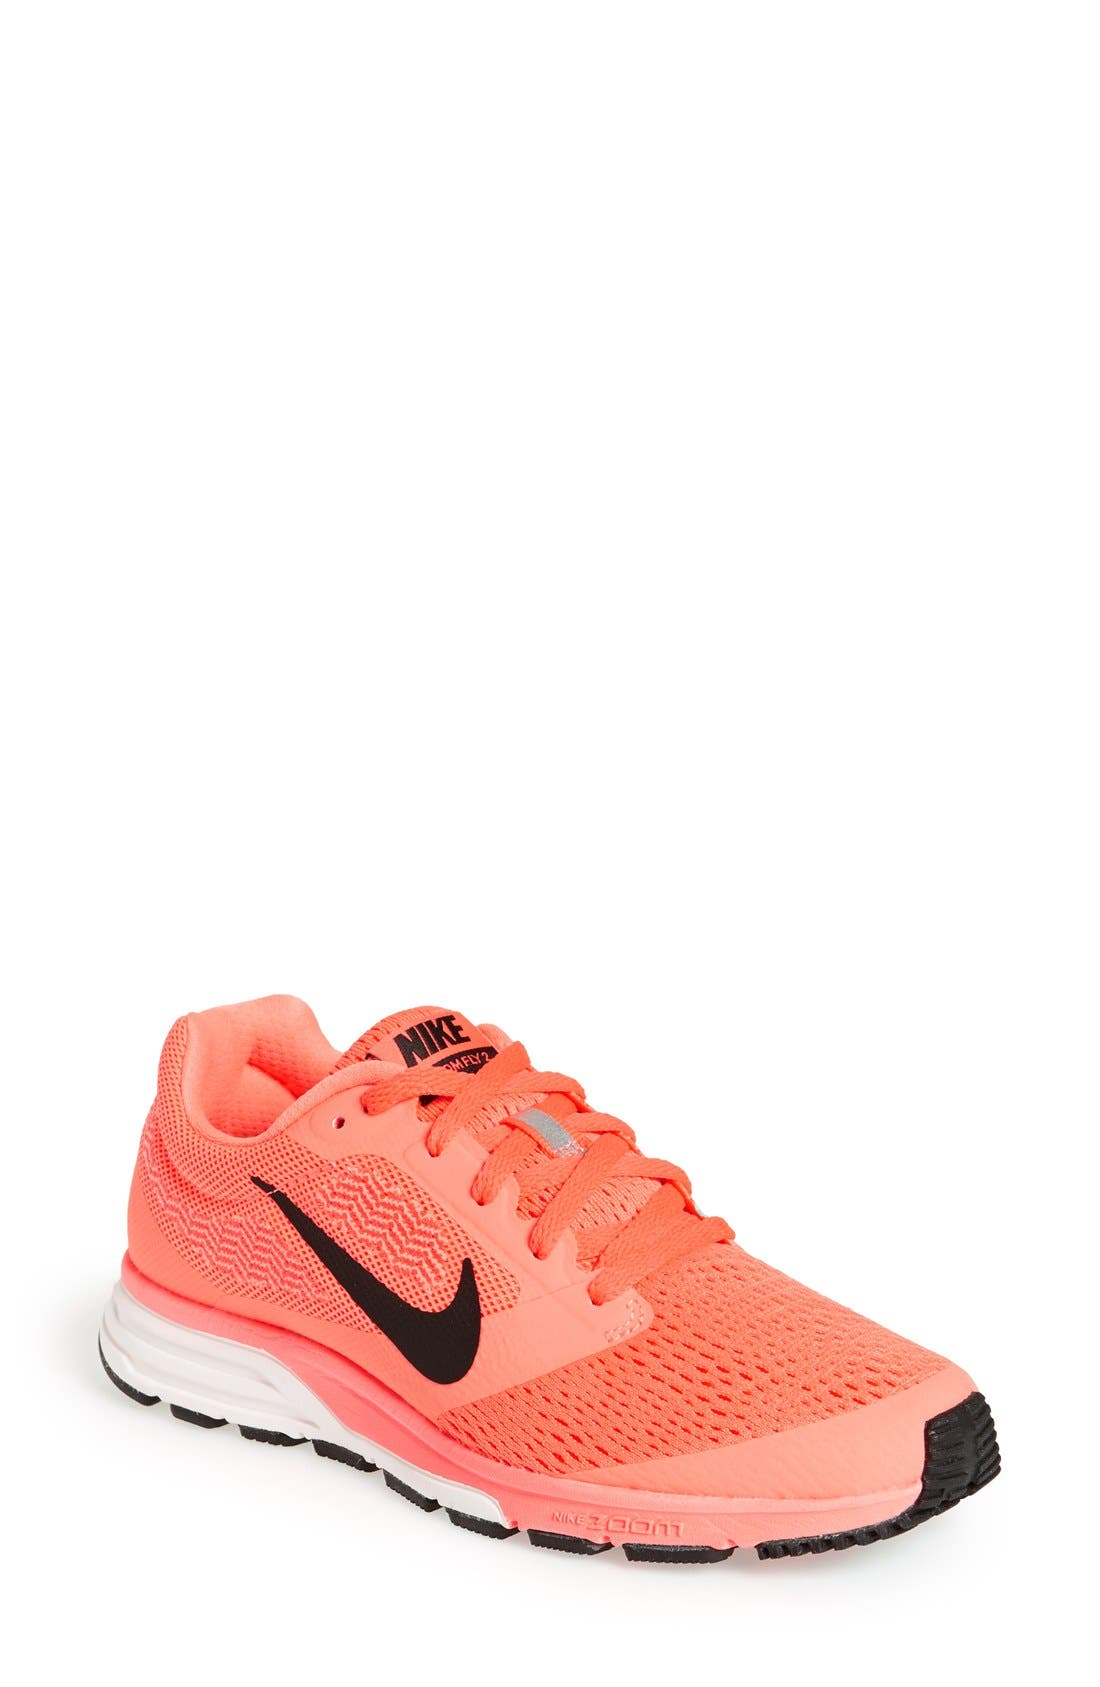 Alternate Image 1 Selected - Nike 'Zoom Fly 2' Running Shoe (Women)